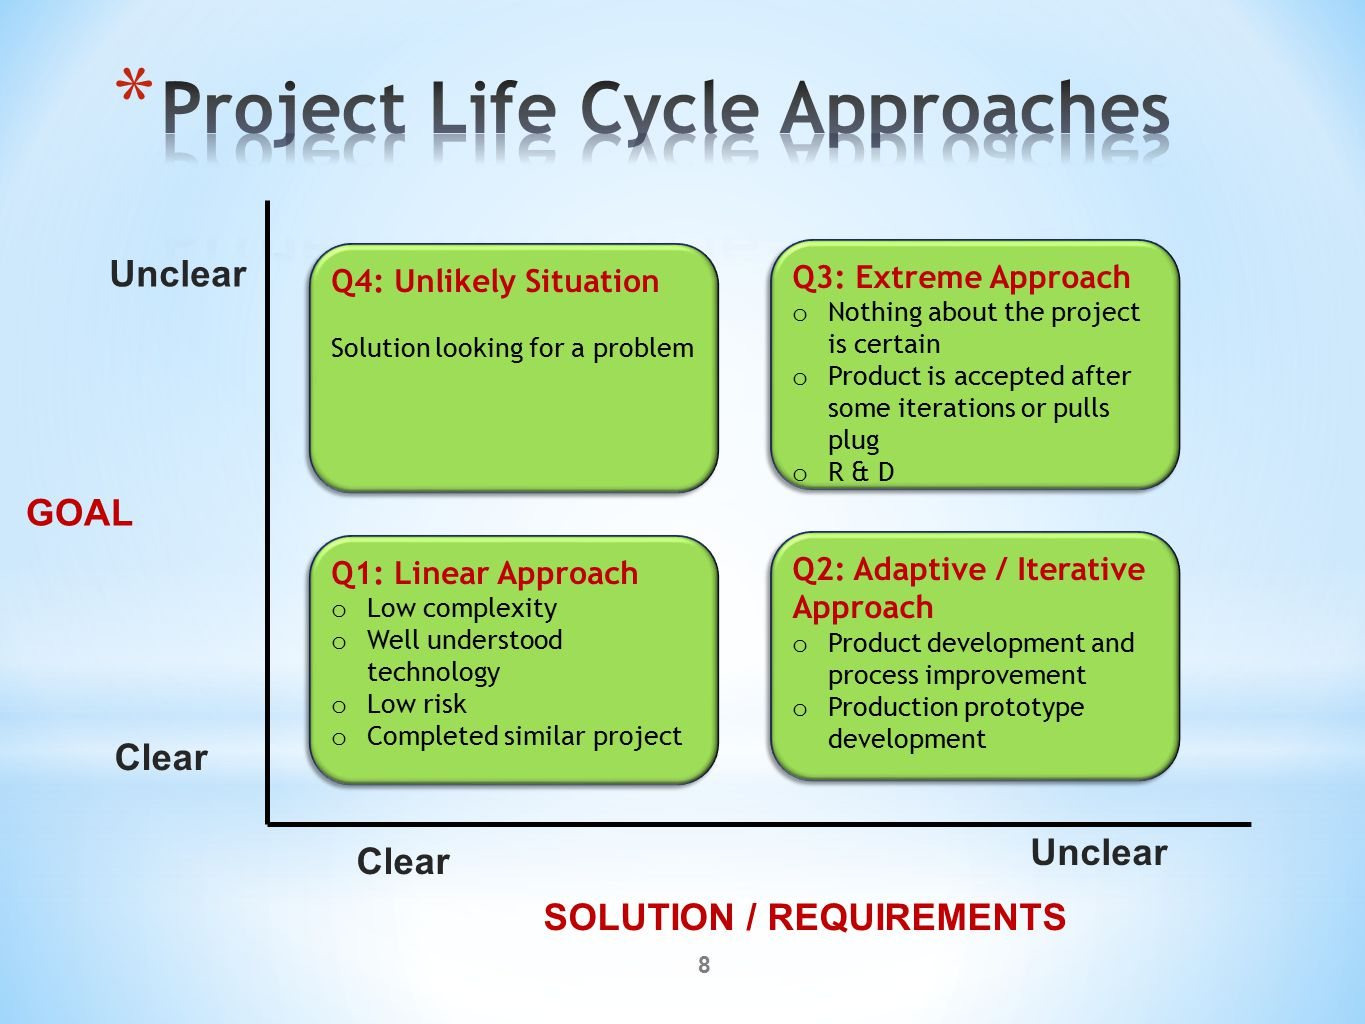 Objective: Identify the funding needed to meet project goals / deliverables.